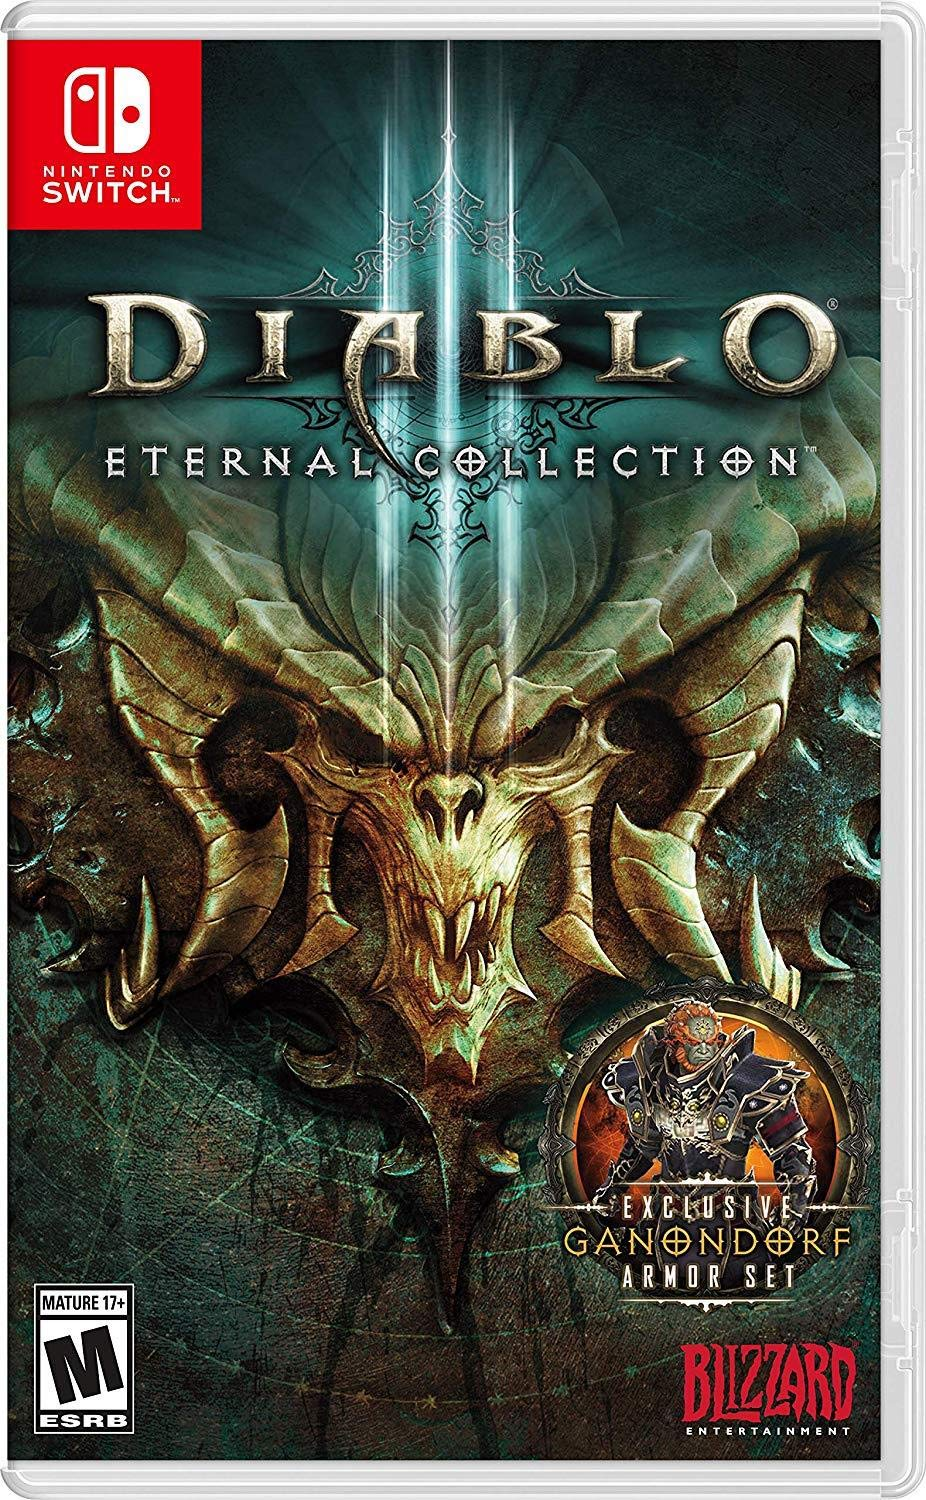 Diablo 3 - Eternal Edition for Nintendo Switch [USA]: Amazon.es: Activision: Cine y Series TV